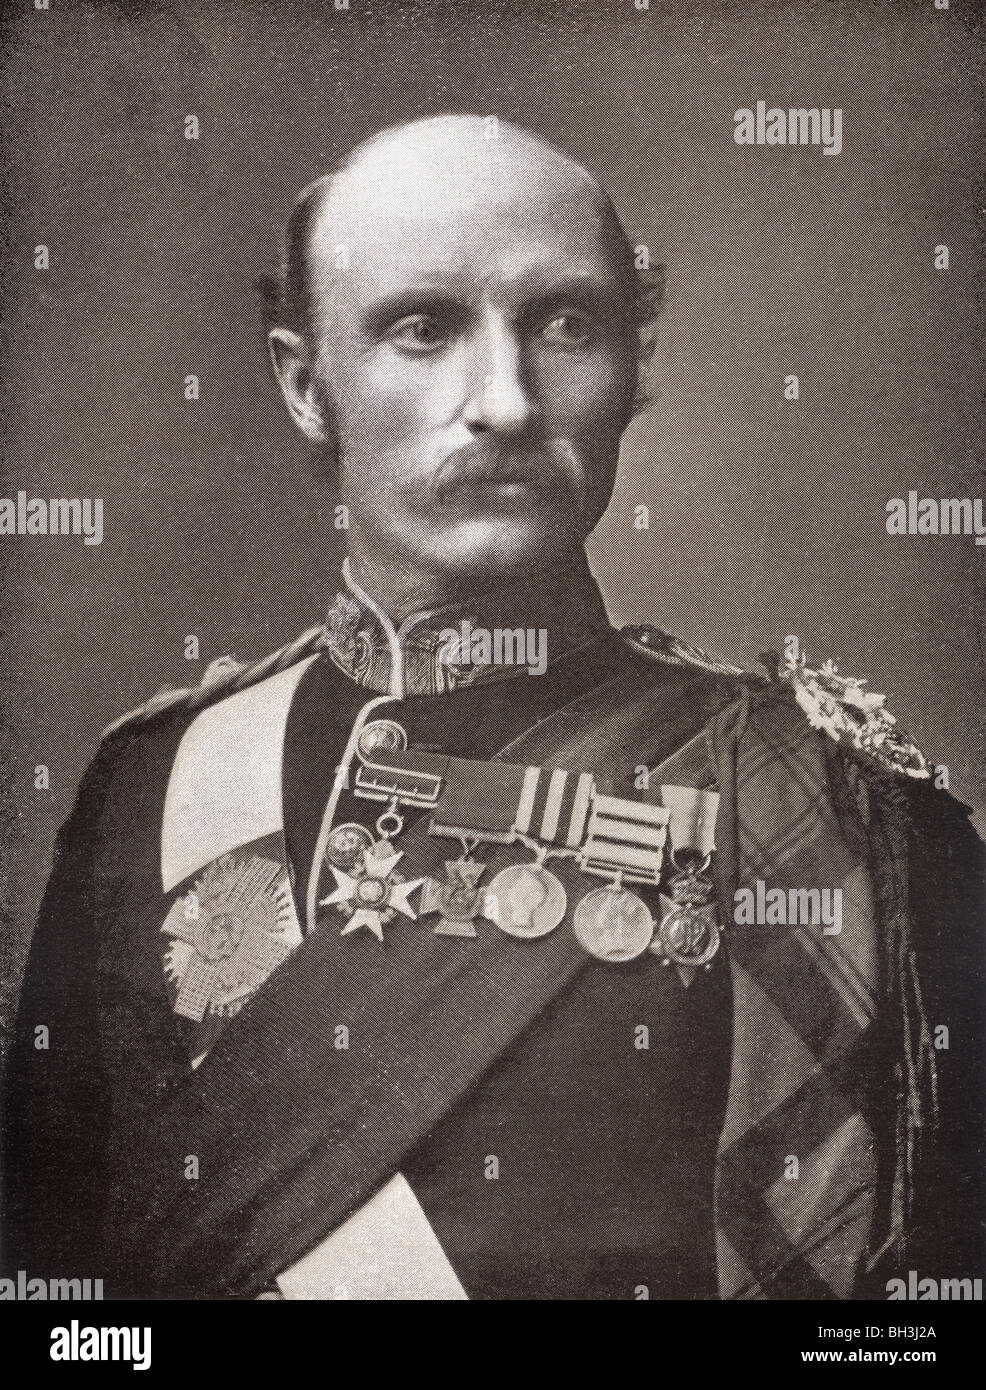 Field Marshal Sir George Stuart White, 1835 to 1912. British Army officer. - Stock Image